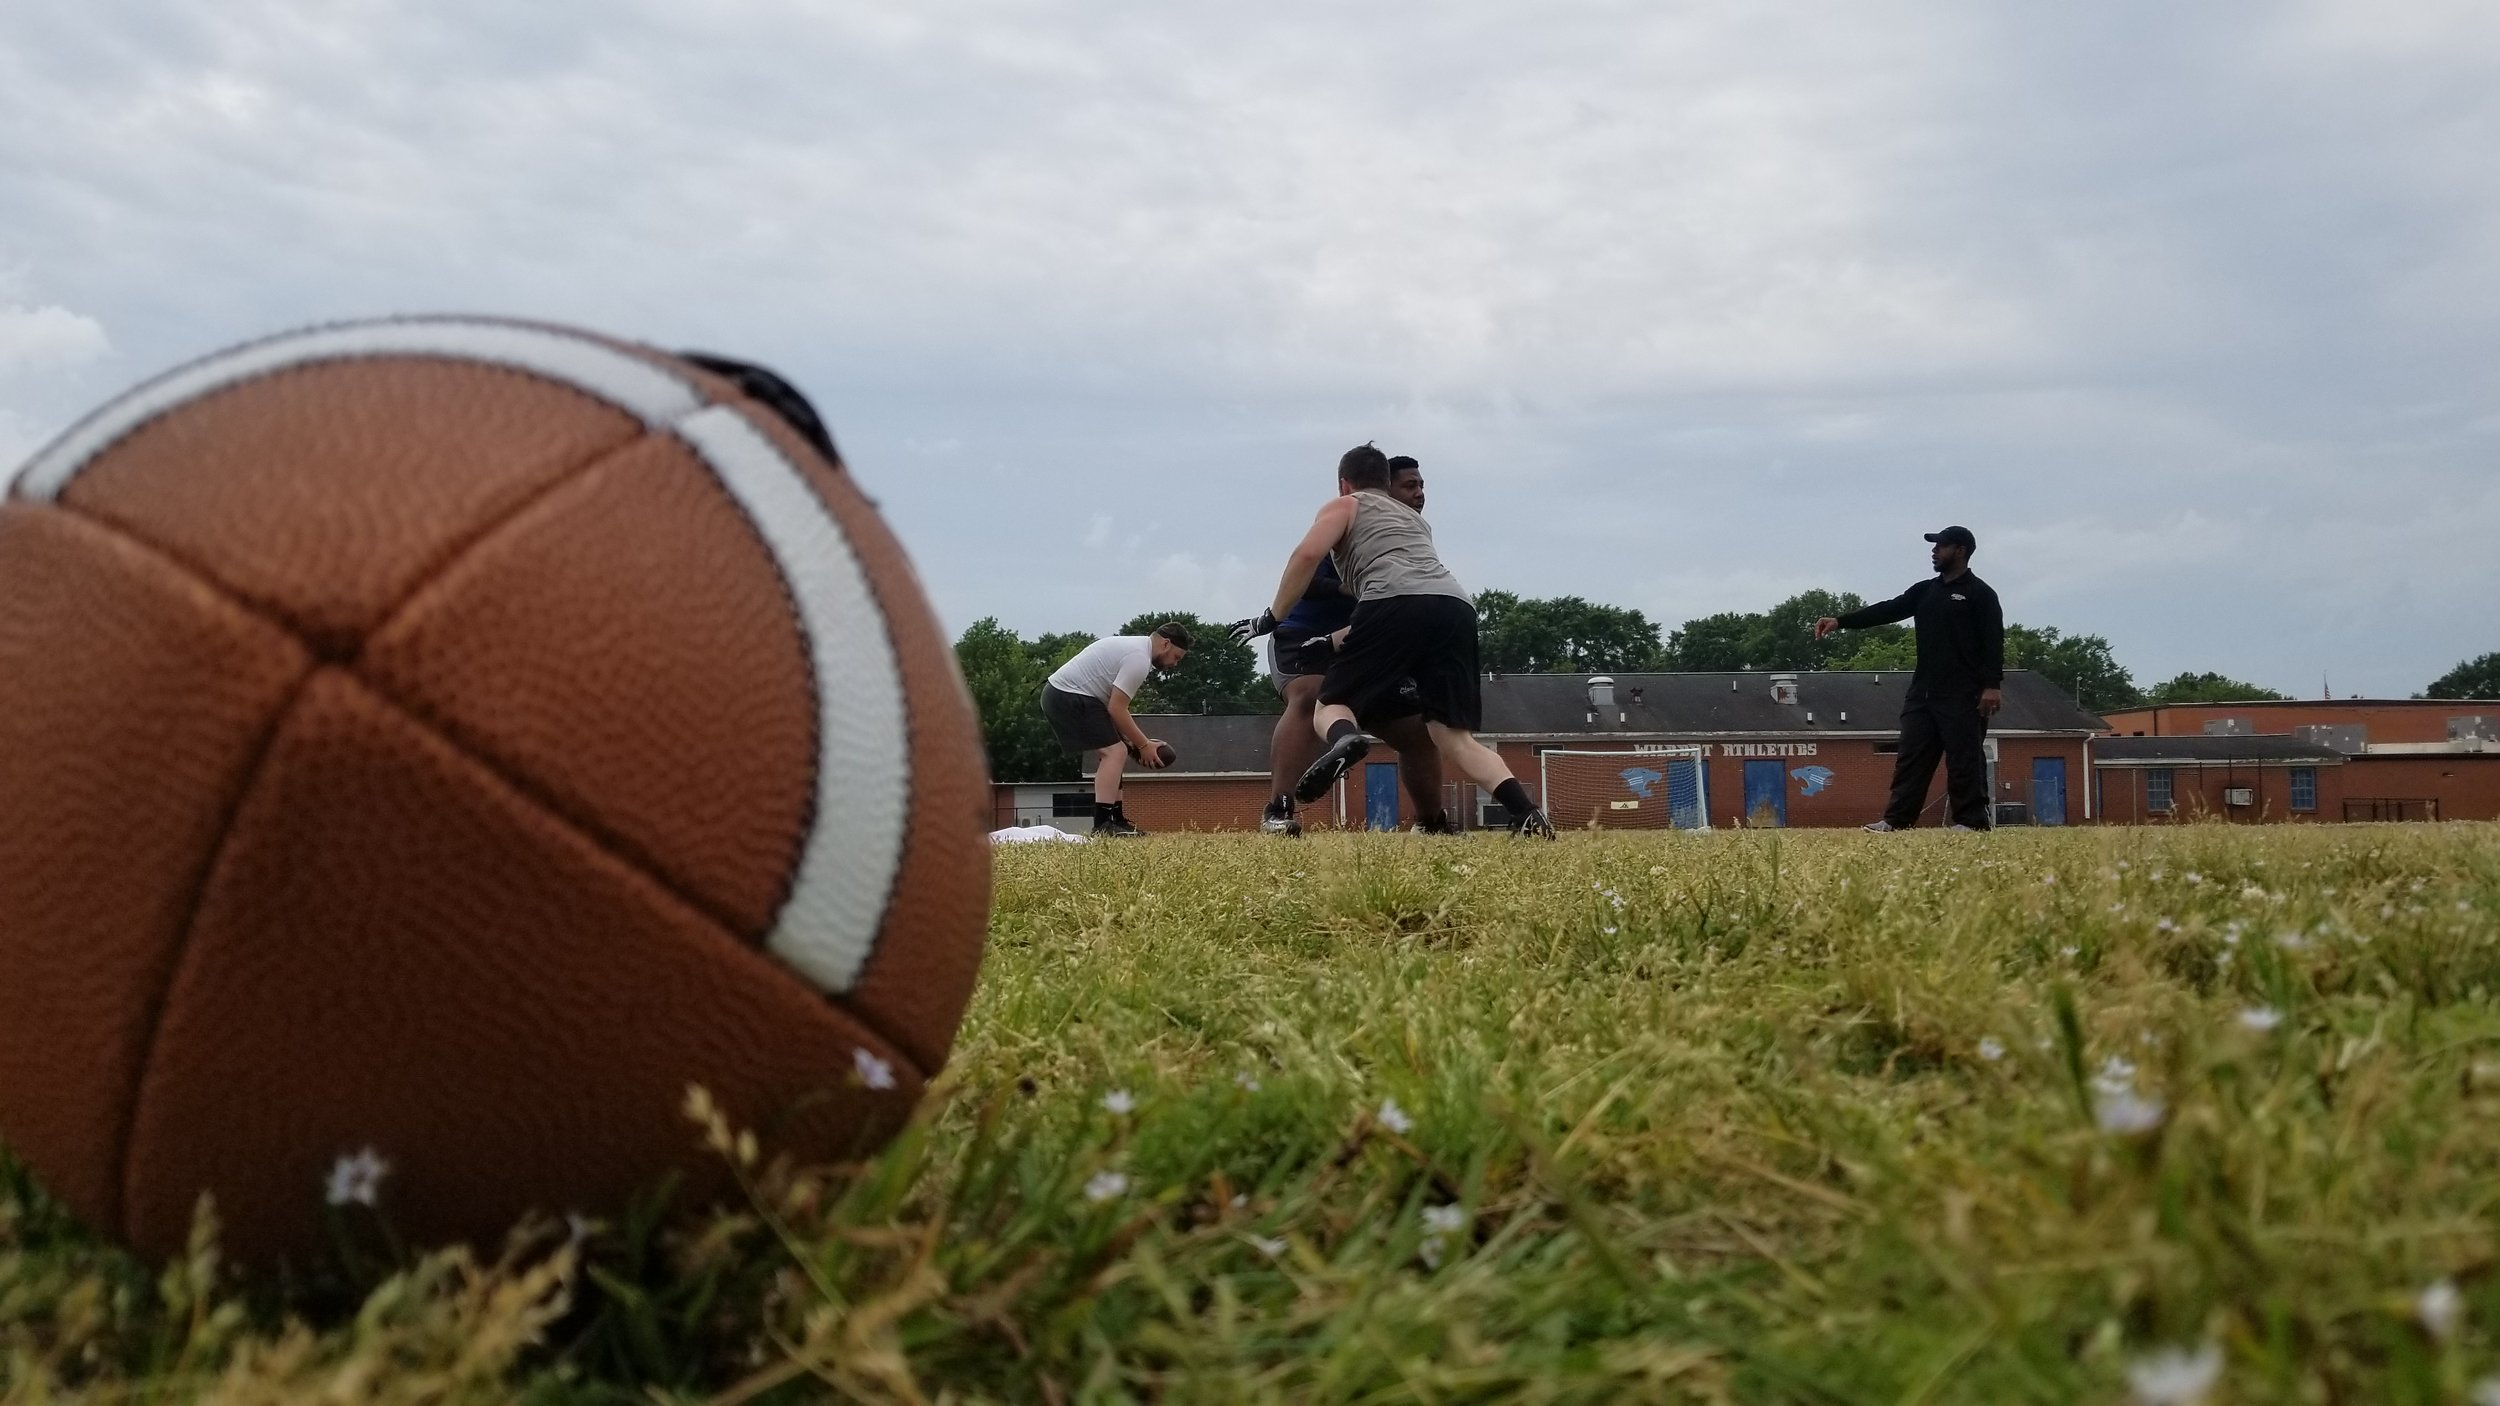 STEEL  BRINGS YOUNG  MEN  TOGETHER  - WVUA 23 SPORTS